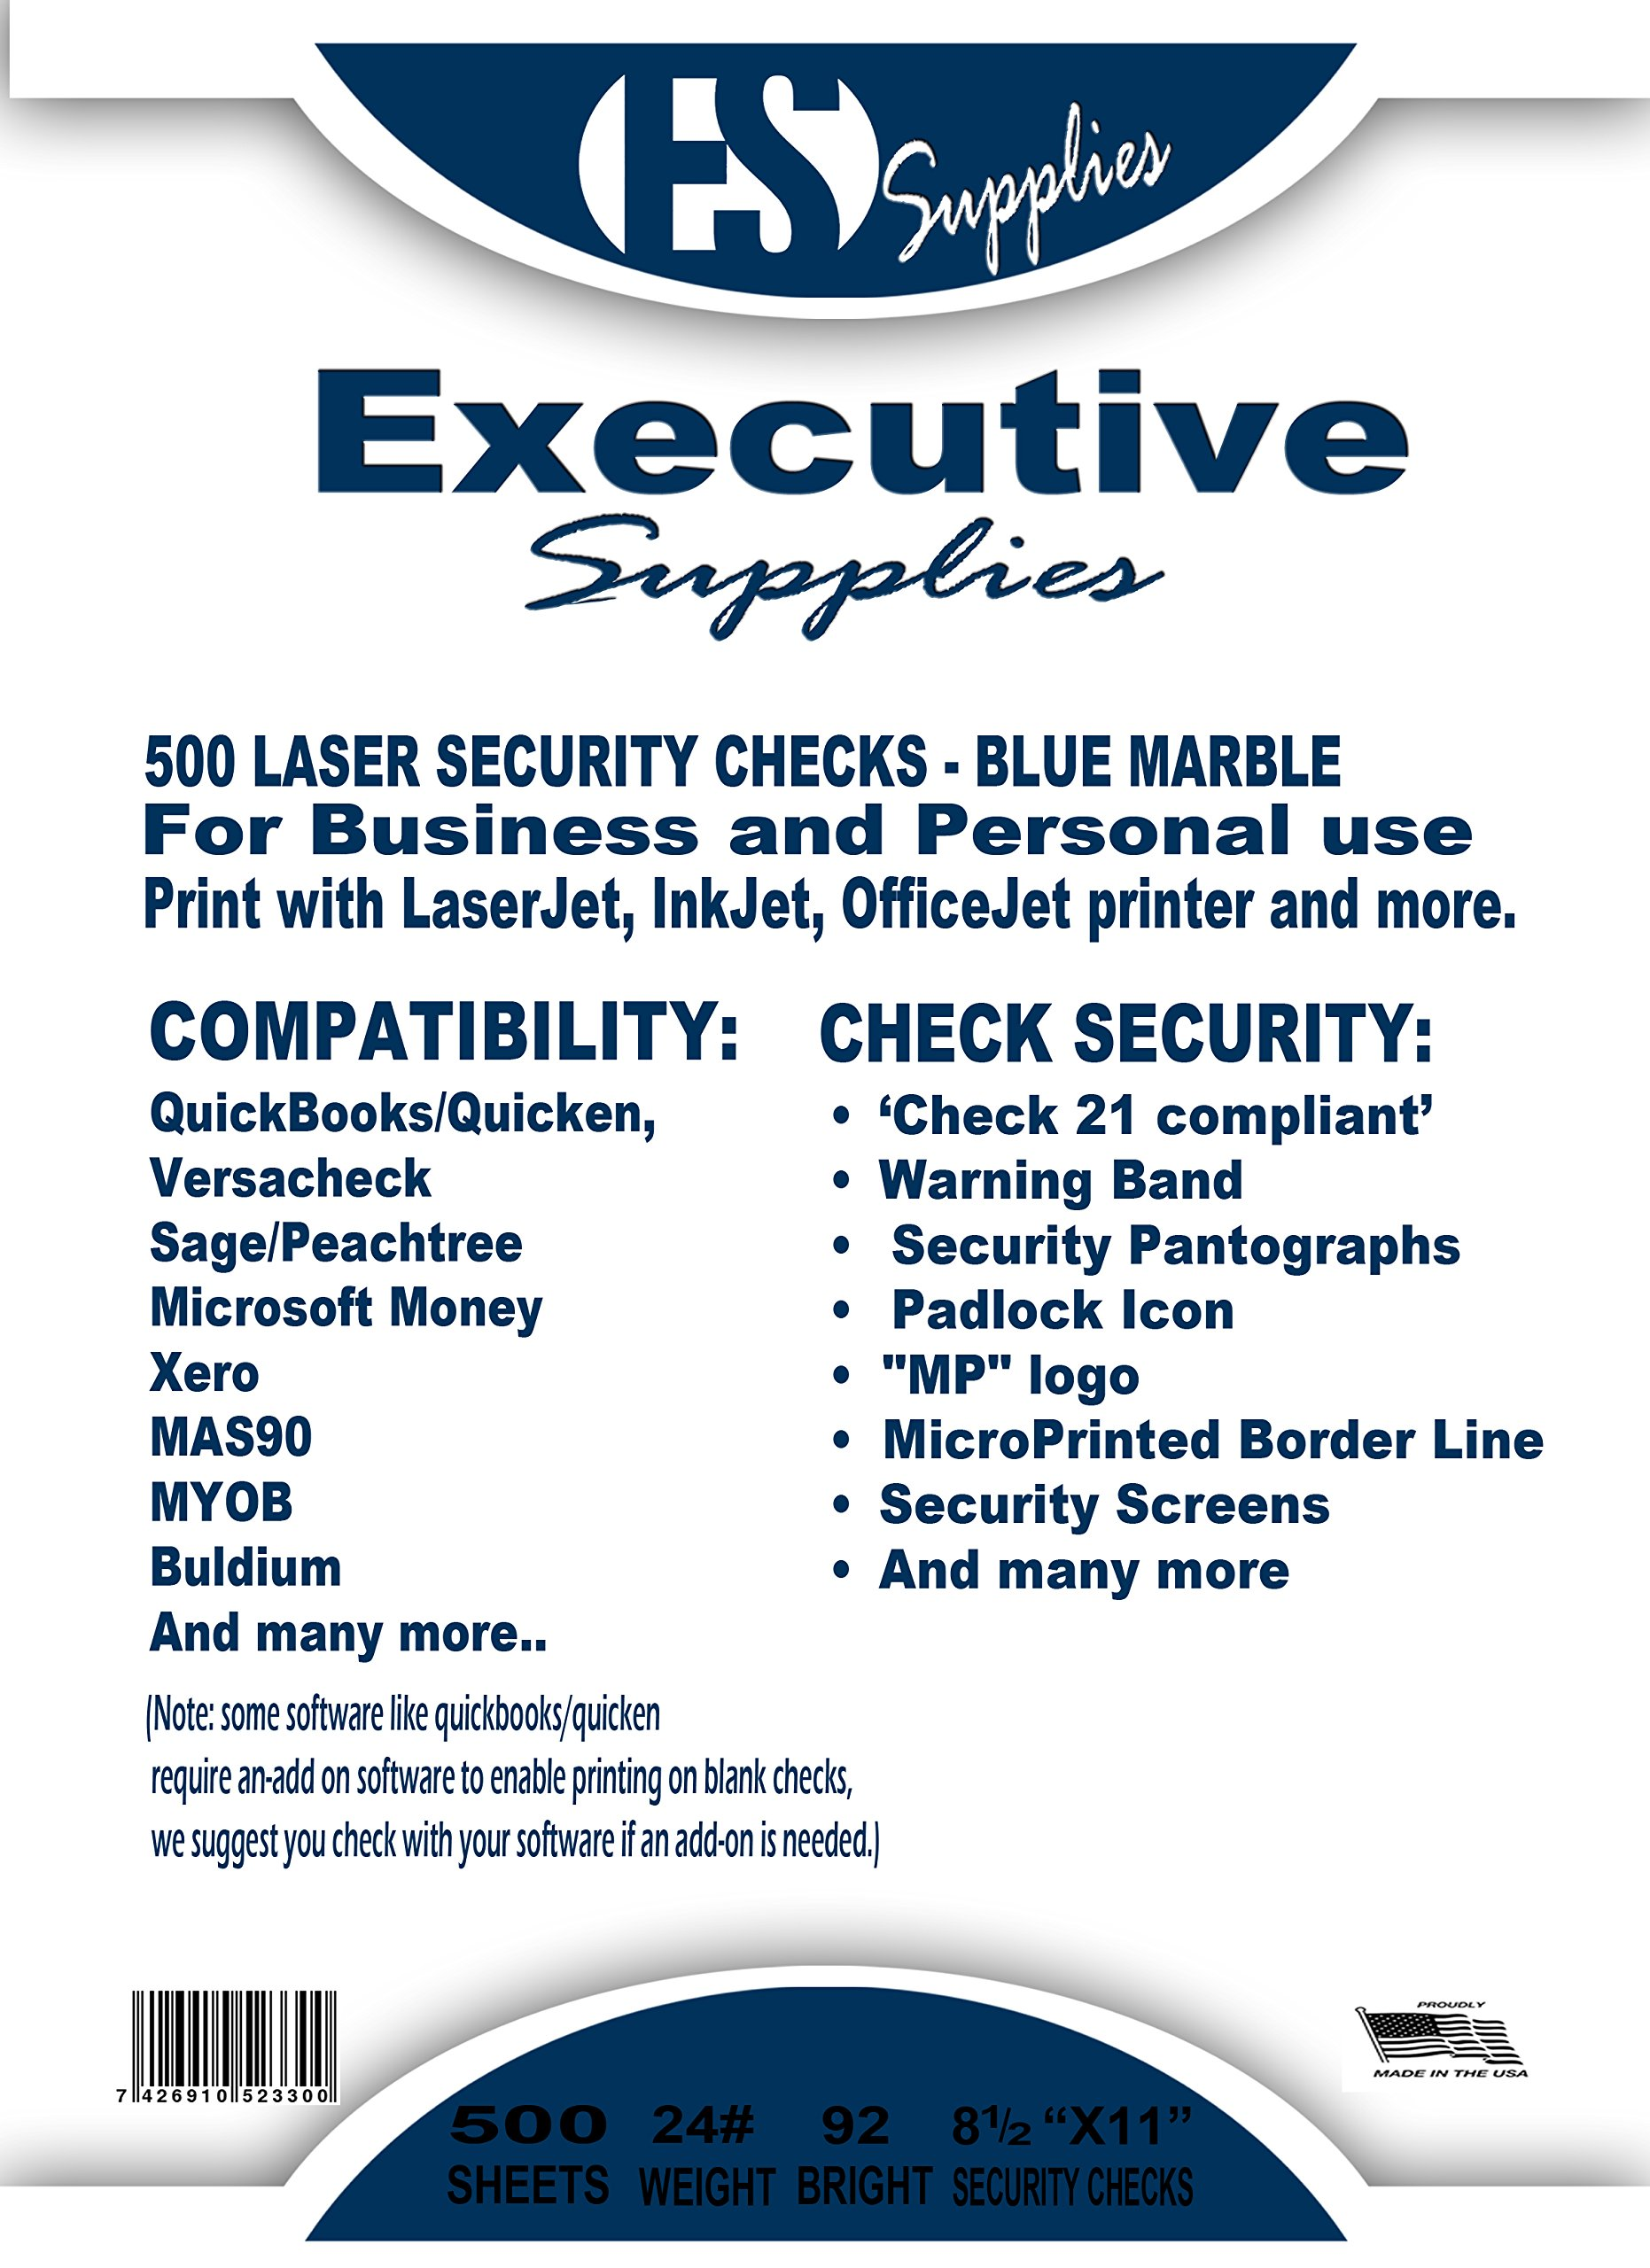 500 Blank Check Stock-Check on Top-Blue Marble Pattern-Compatible with Quickbooks,Quicken,Versacheck and More-(500 Laser Security Sheets-8.5''x11'' #24)-Made in USA with Pride! by Signature Forms (Image #2)